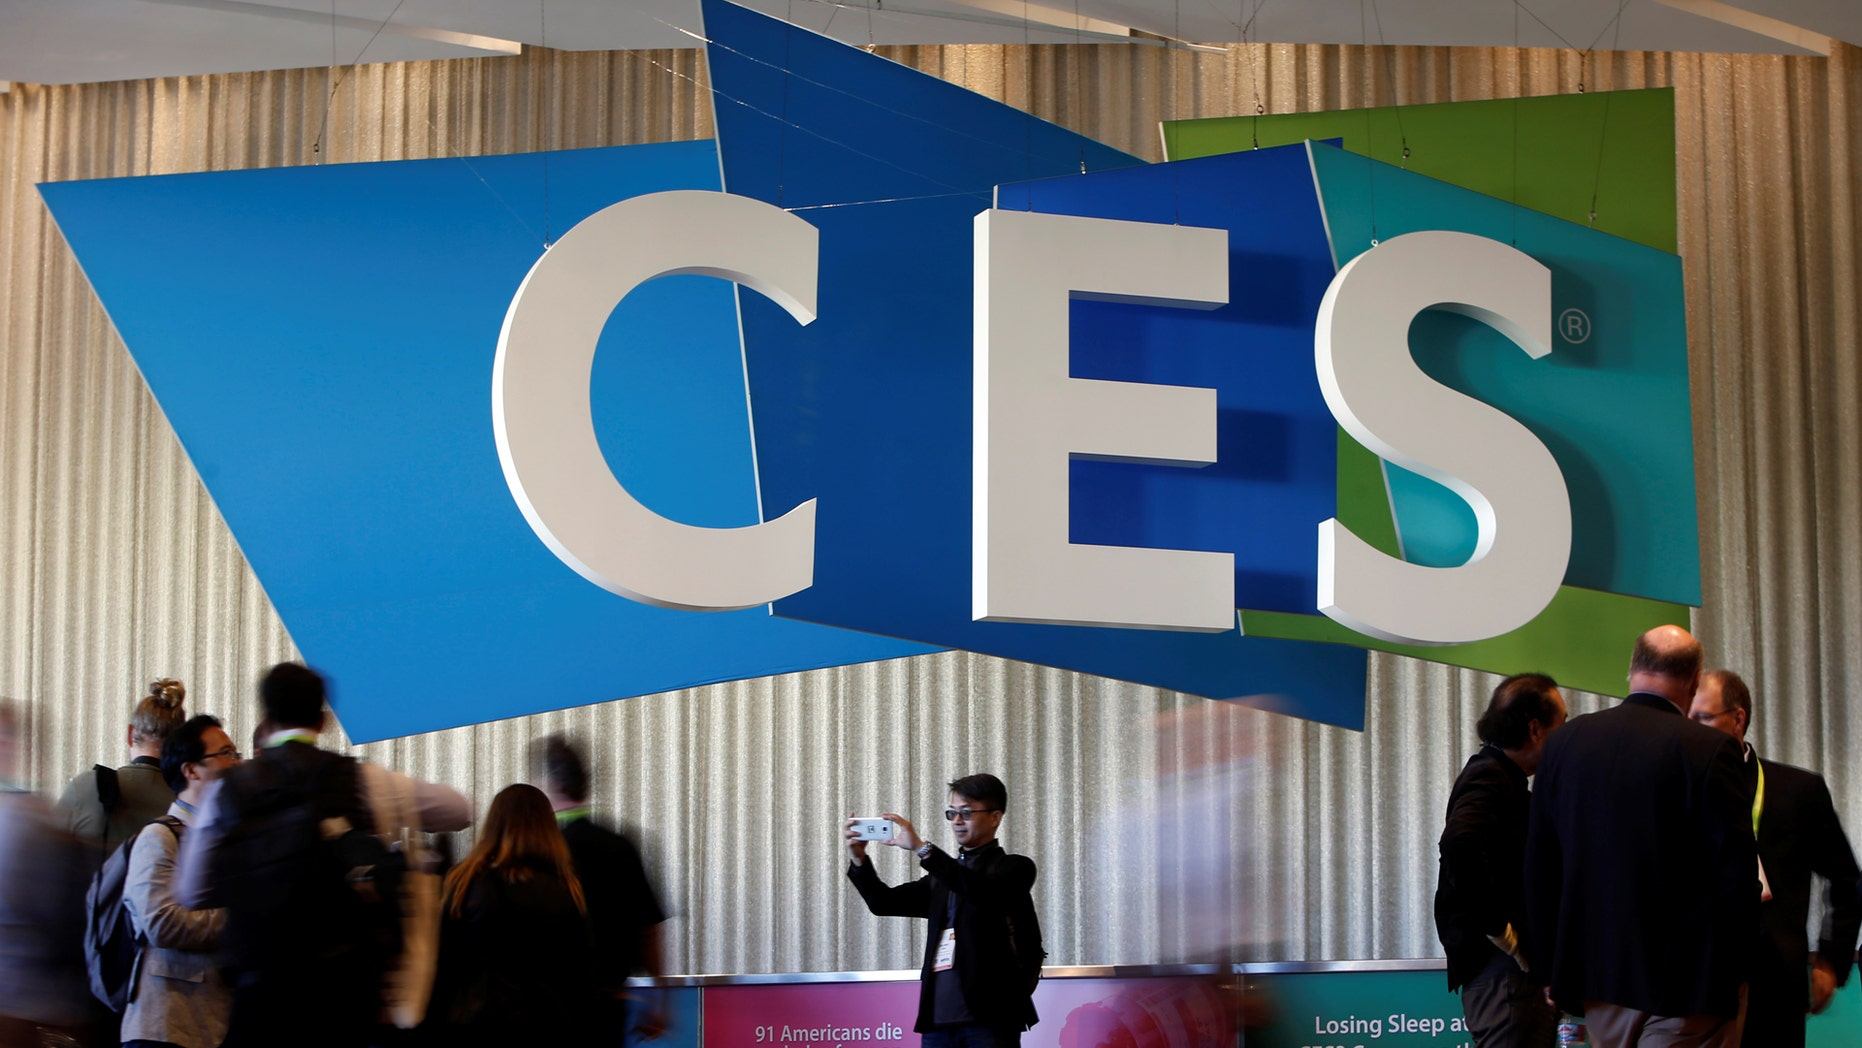 File photo - A man takes a selfie in front of the CES logo during the 2018 CES in Las Vegas, Nevada, U.S. Jan. 10, 2018. (REUTERS/Steve Marcus)